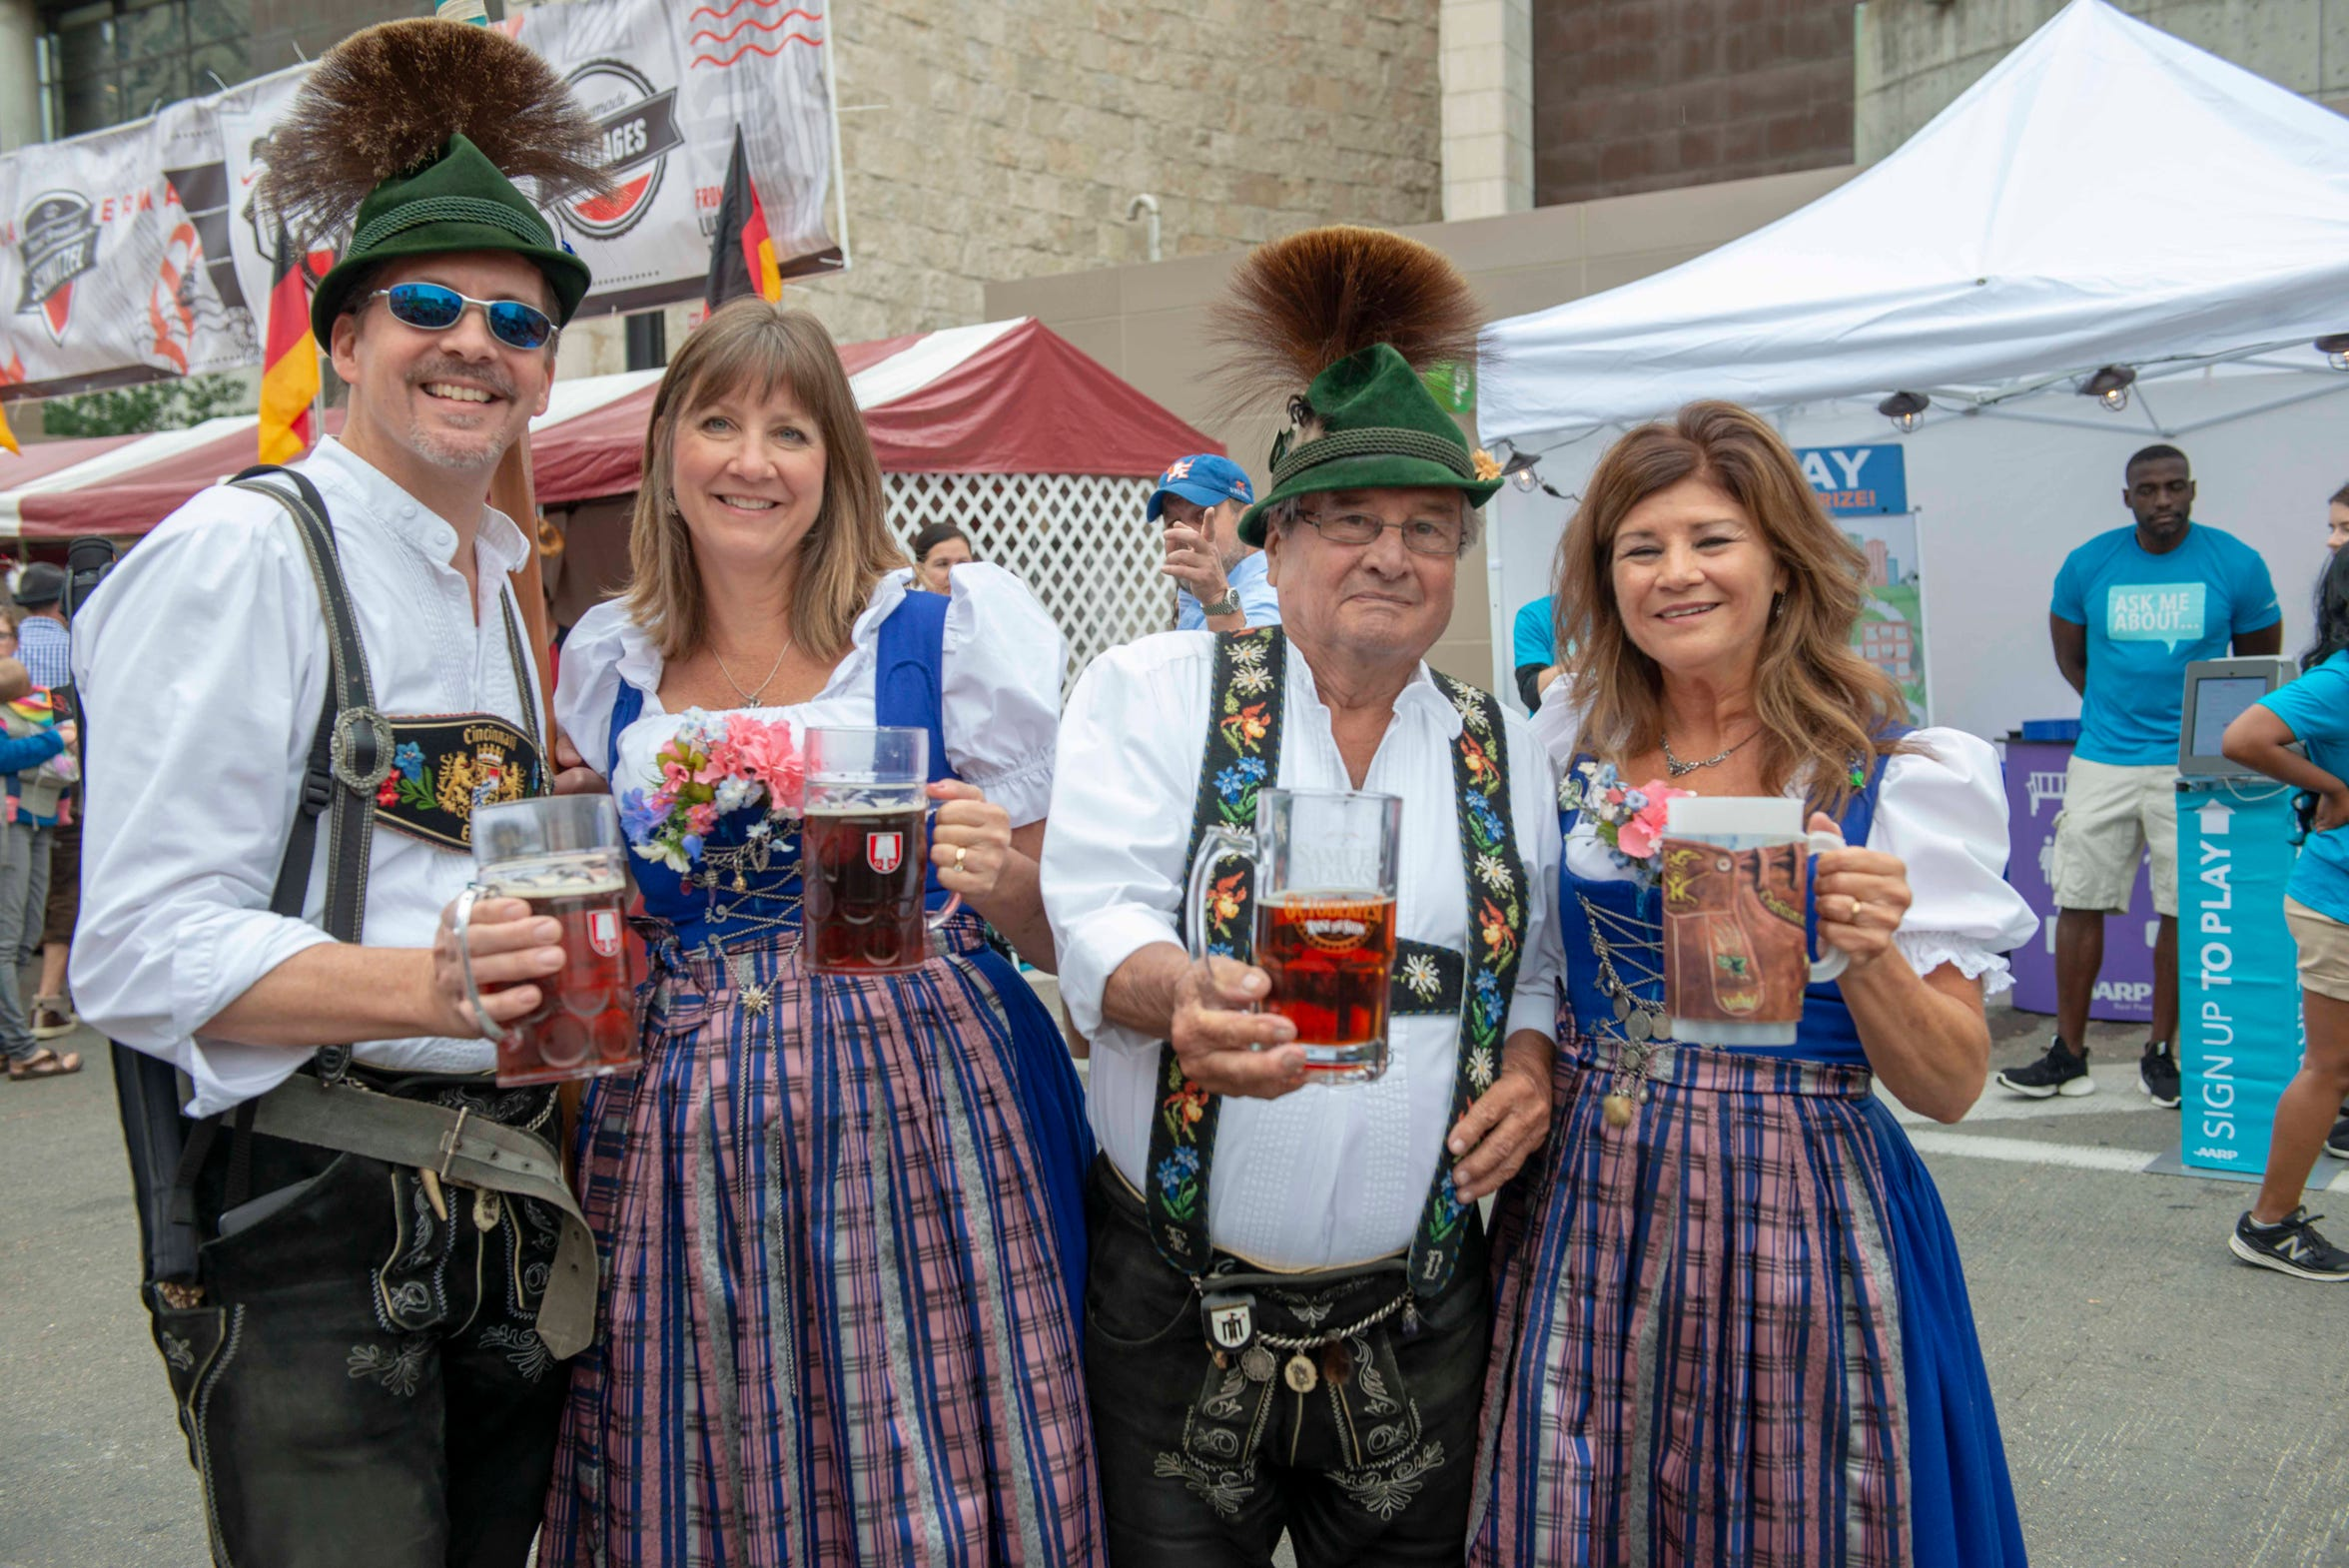 Oktoberfest Zinzinnati, Americas largest Oktoberfest takes over Second and Third Streets on Saturday, September 22, 2018. The Enziian Dance Group from Cincinnati performs  on the main stage located on Second Street and performs to traditional German music.